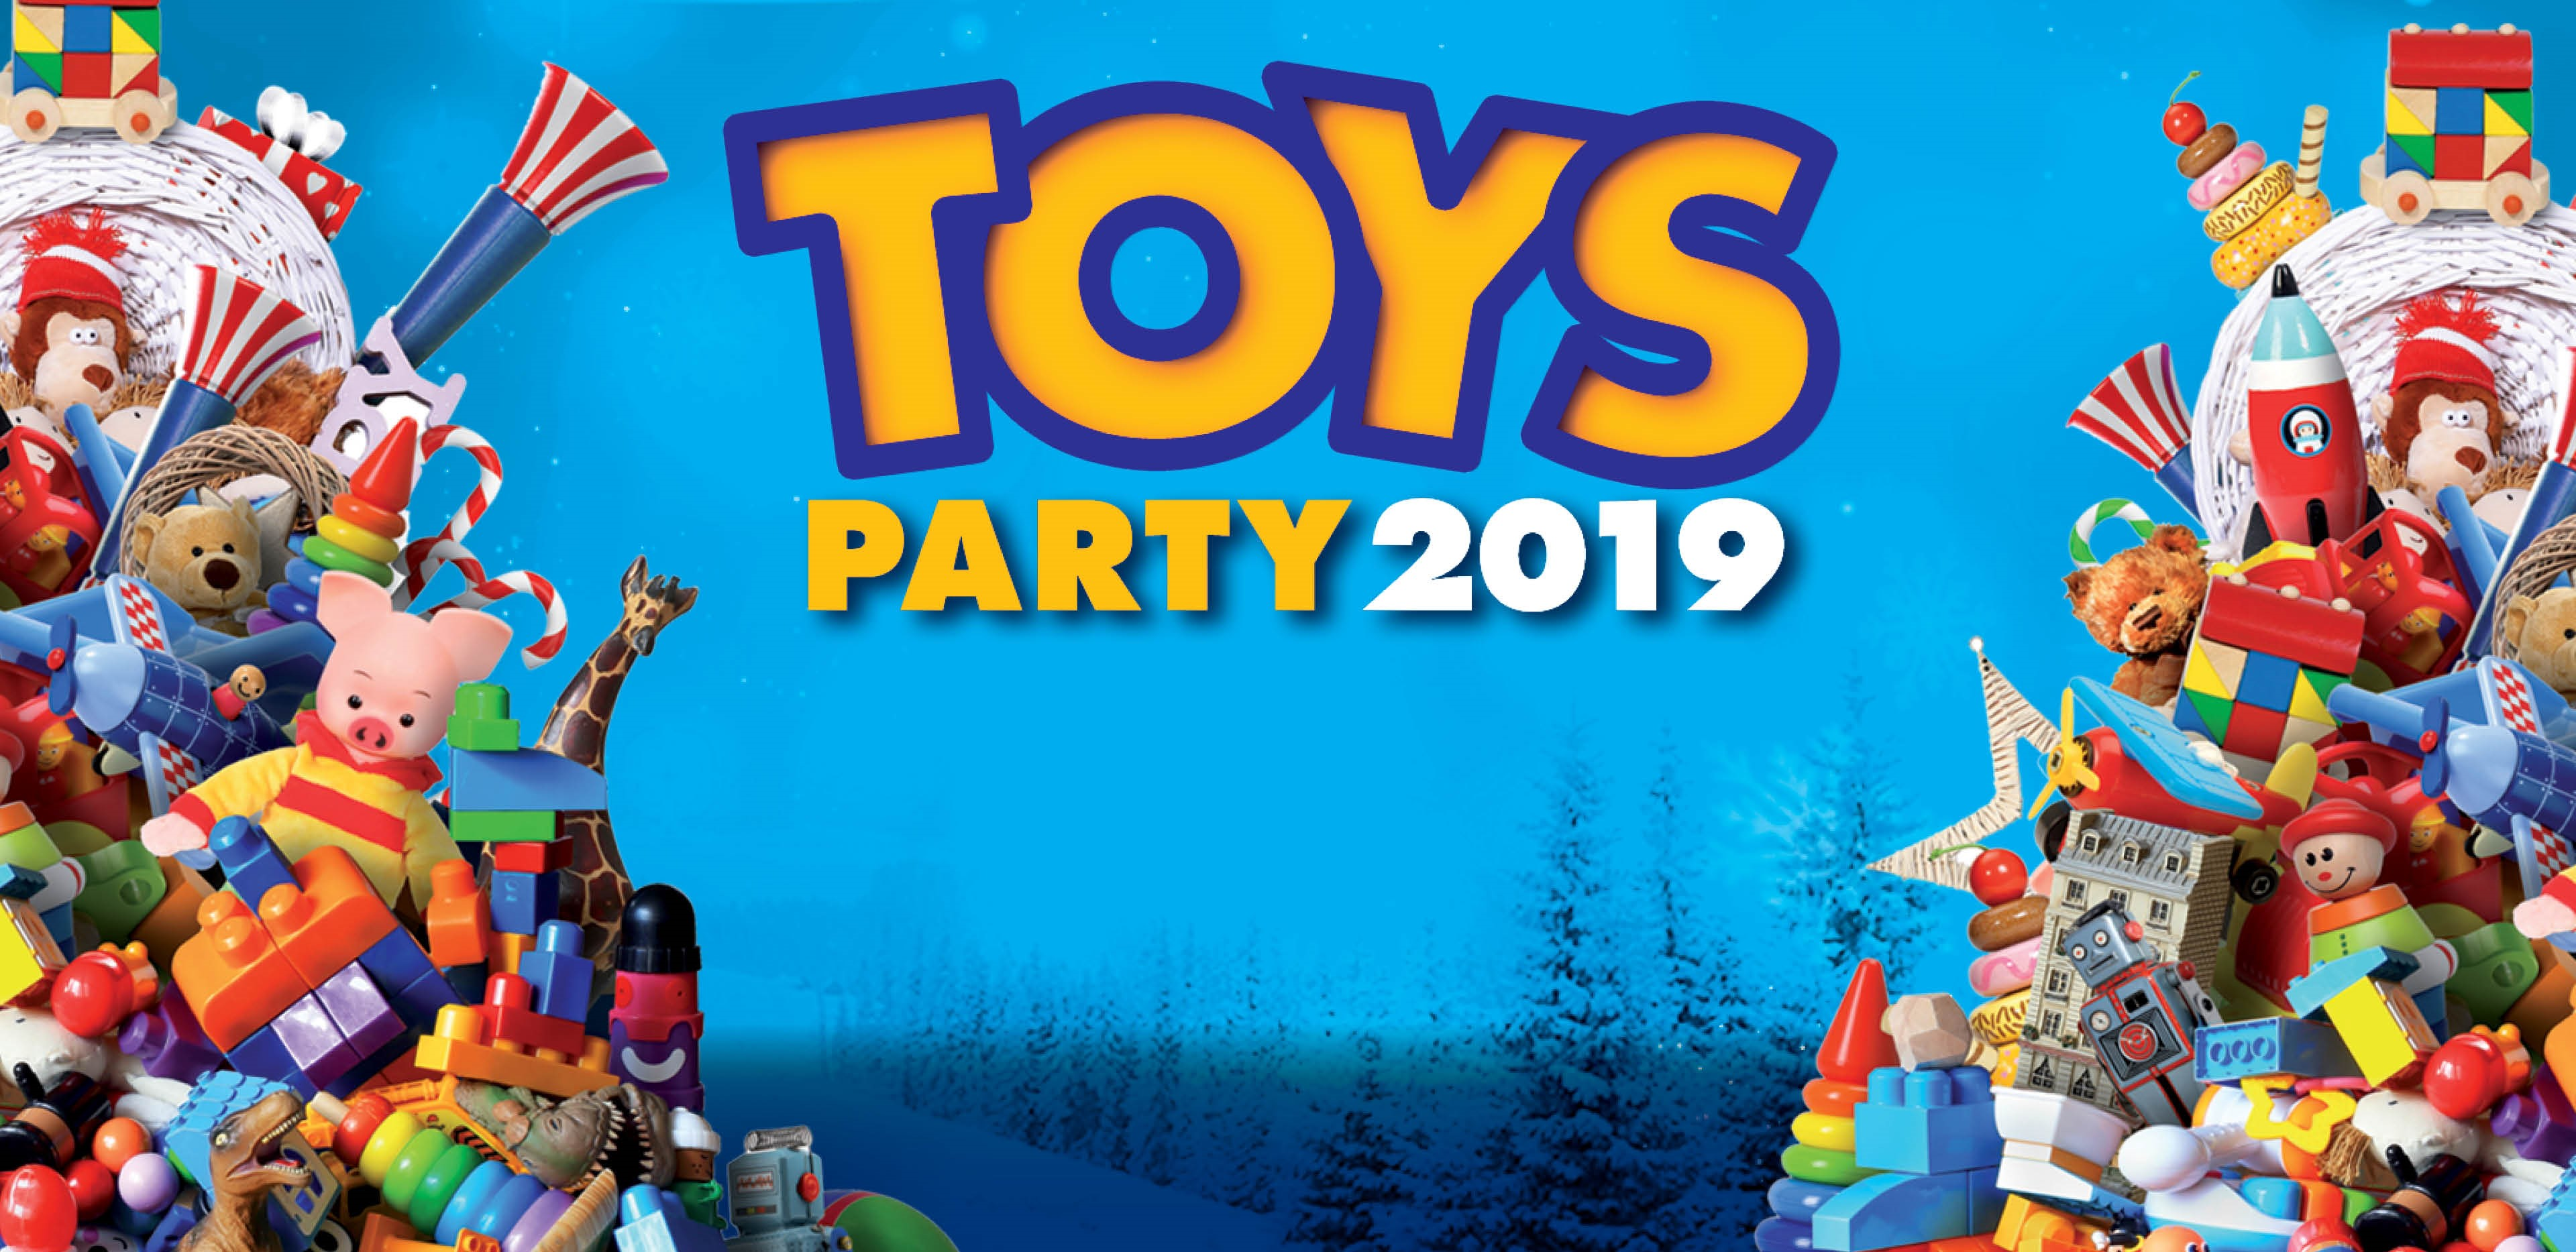 Piles of toys and Toys Party 2019 announcement